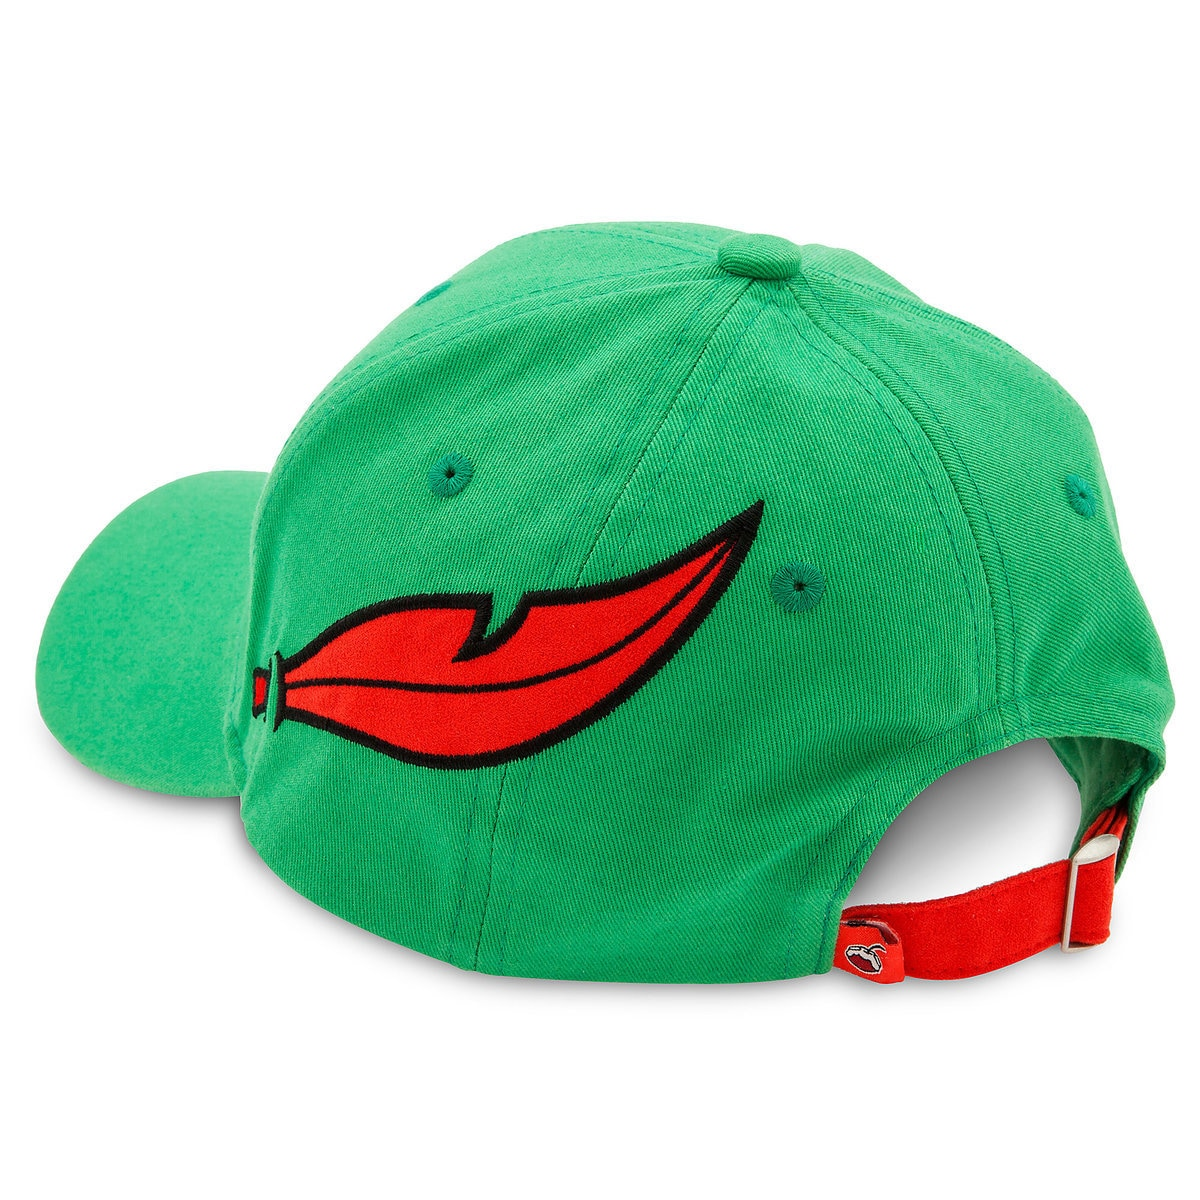 34f535a587f6e Product Image of Peter Pan Baseball Cap for Adults by Cakeworthy   2